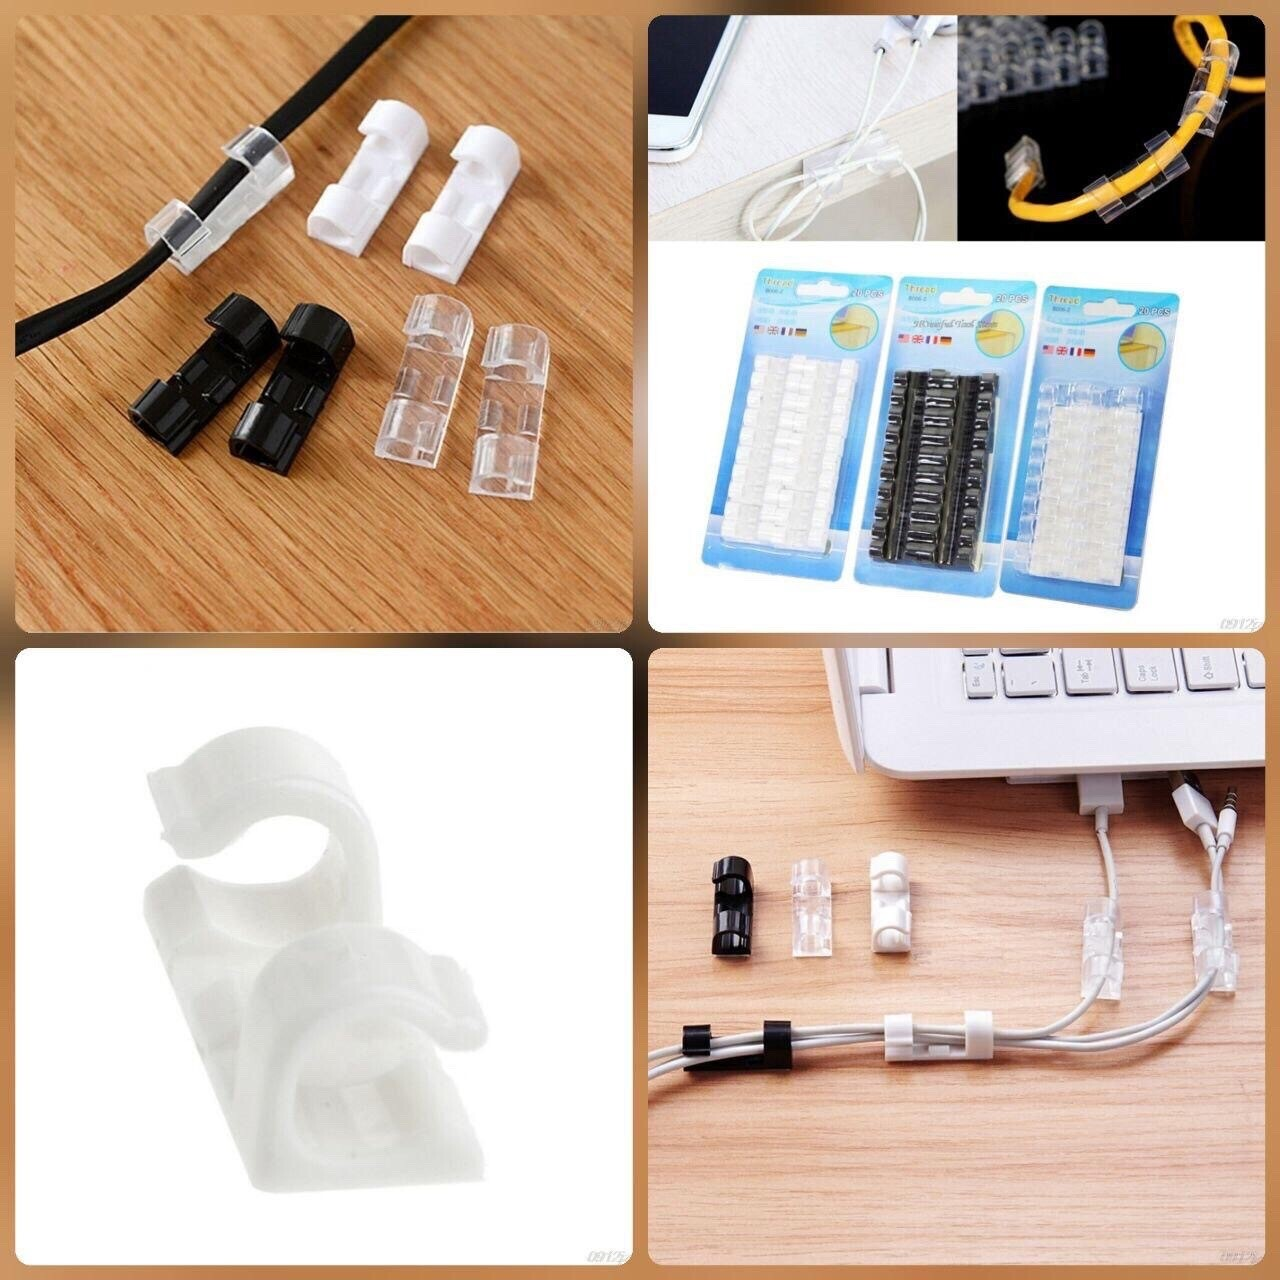 20 Pc Plastic Wire Cable Holders